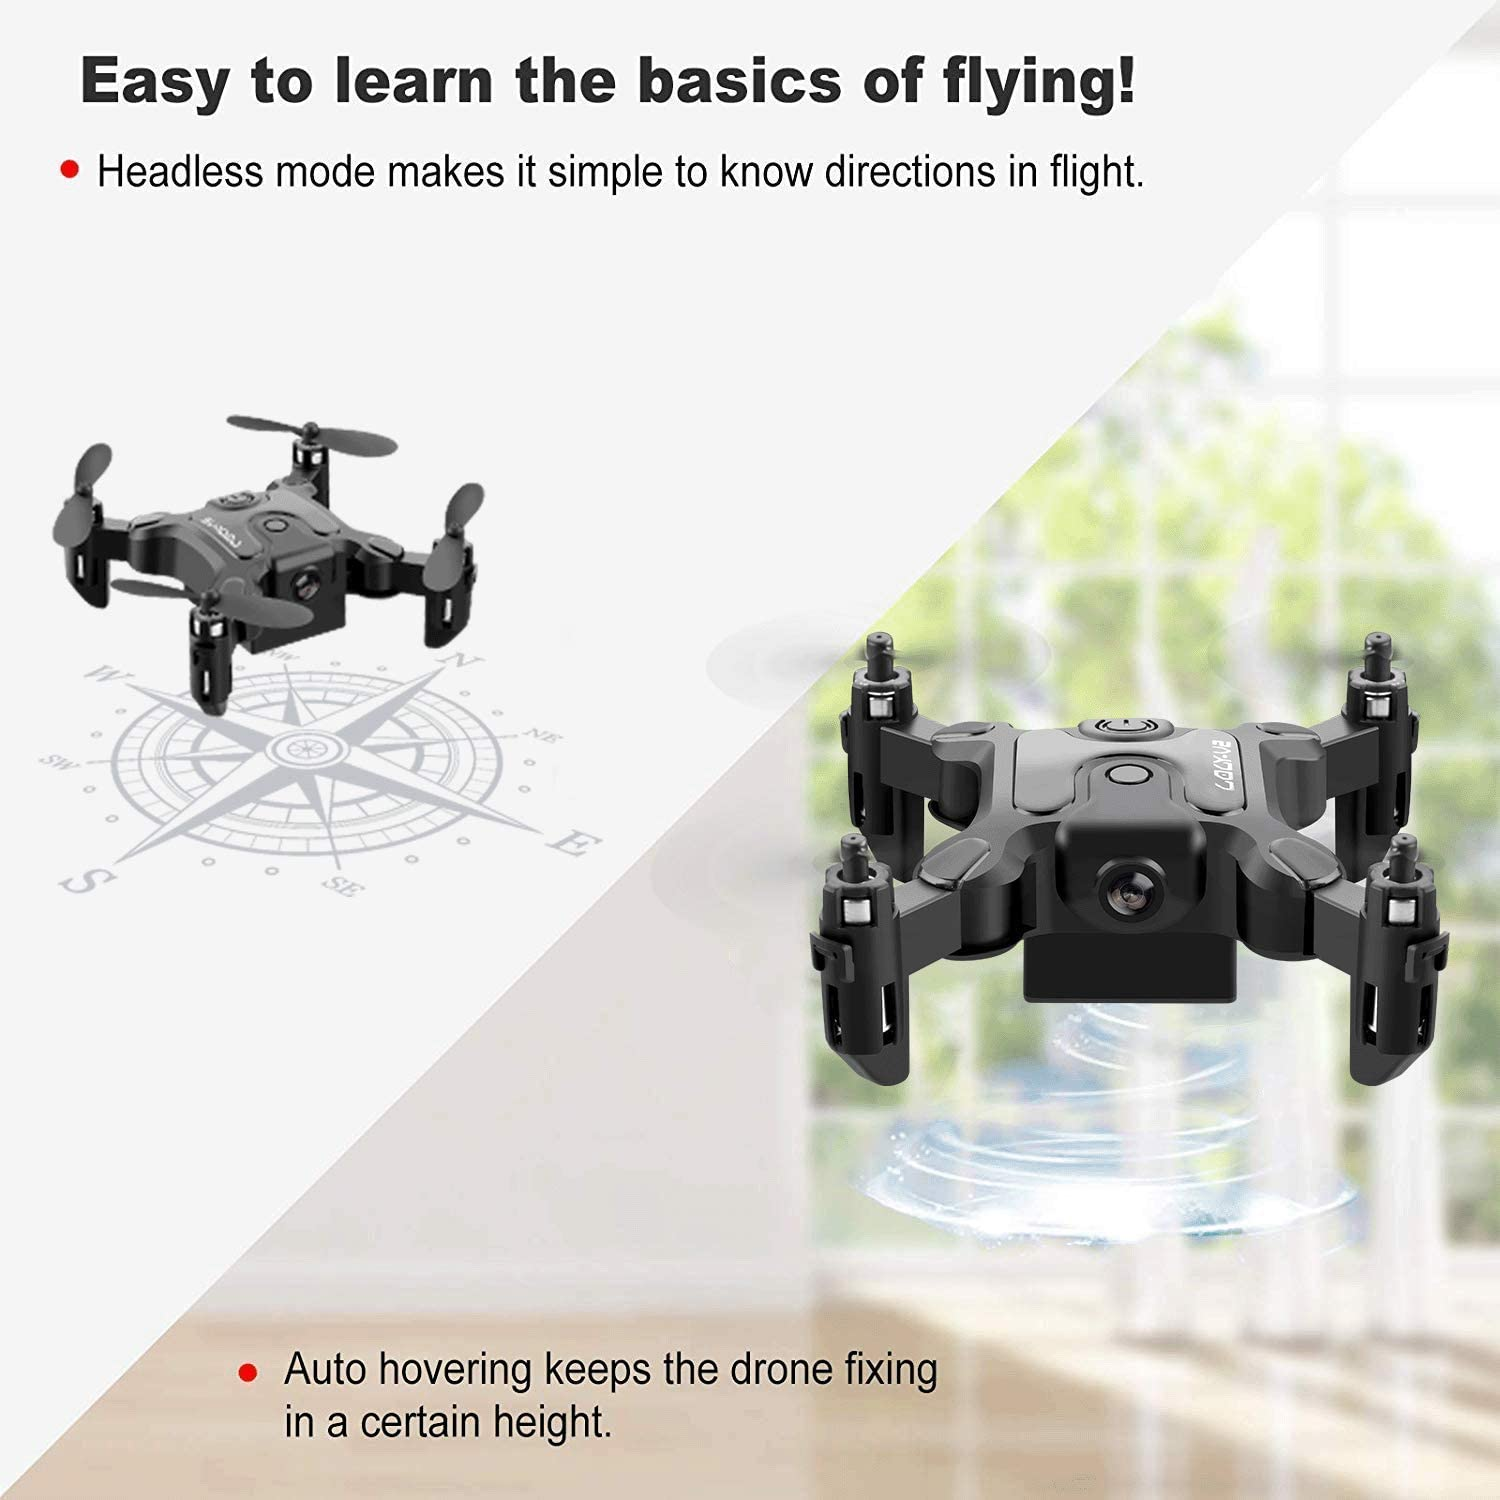 4DRC Mini Foldable Drone with Camera for Kids and Adults Beginners RC Quadcopter,App Control,3D Flips and Headless Mode,Trajectory Flight,Altitude Hold,3 Modular Battery,Gift Toy for Boys and Girls